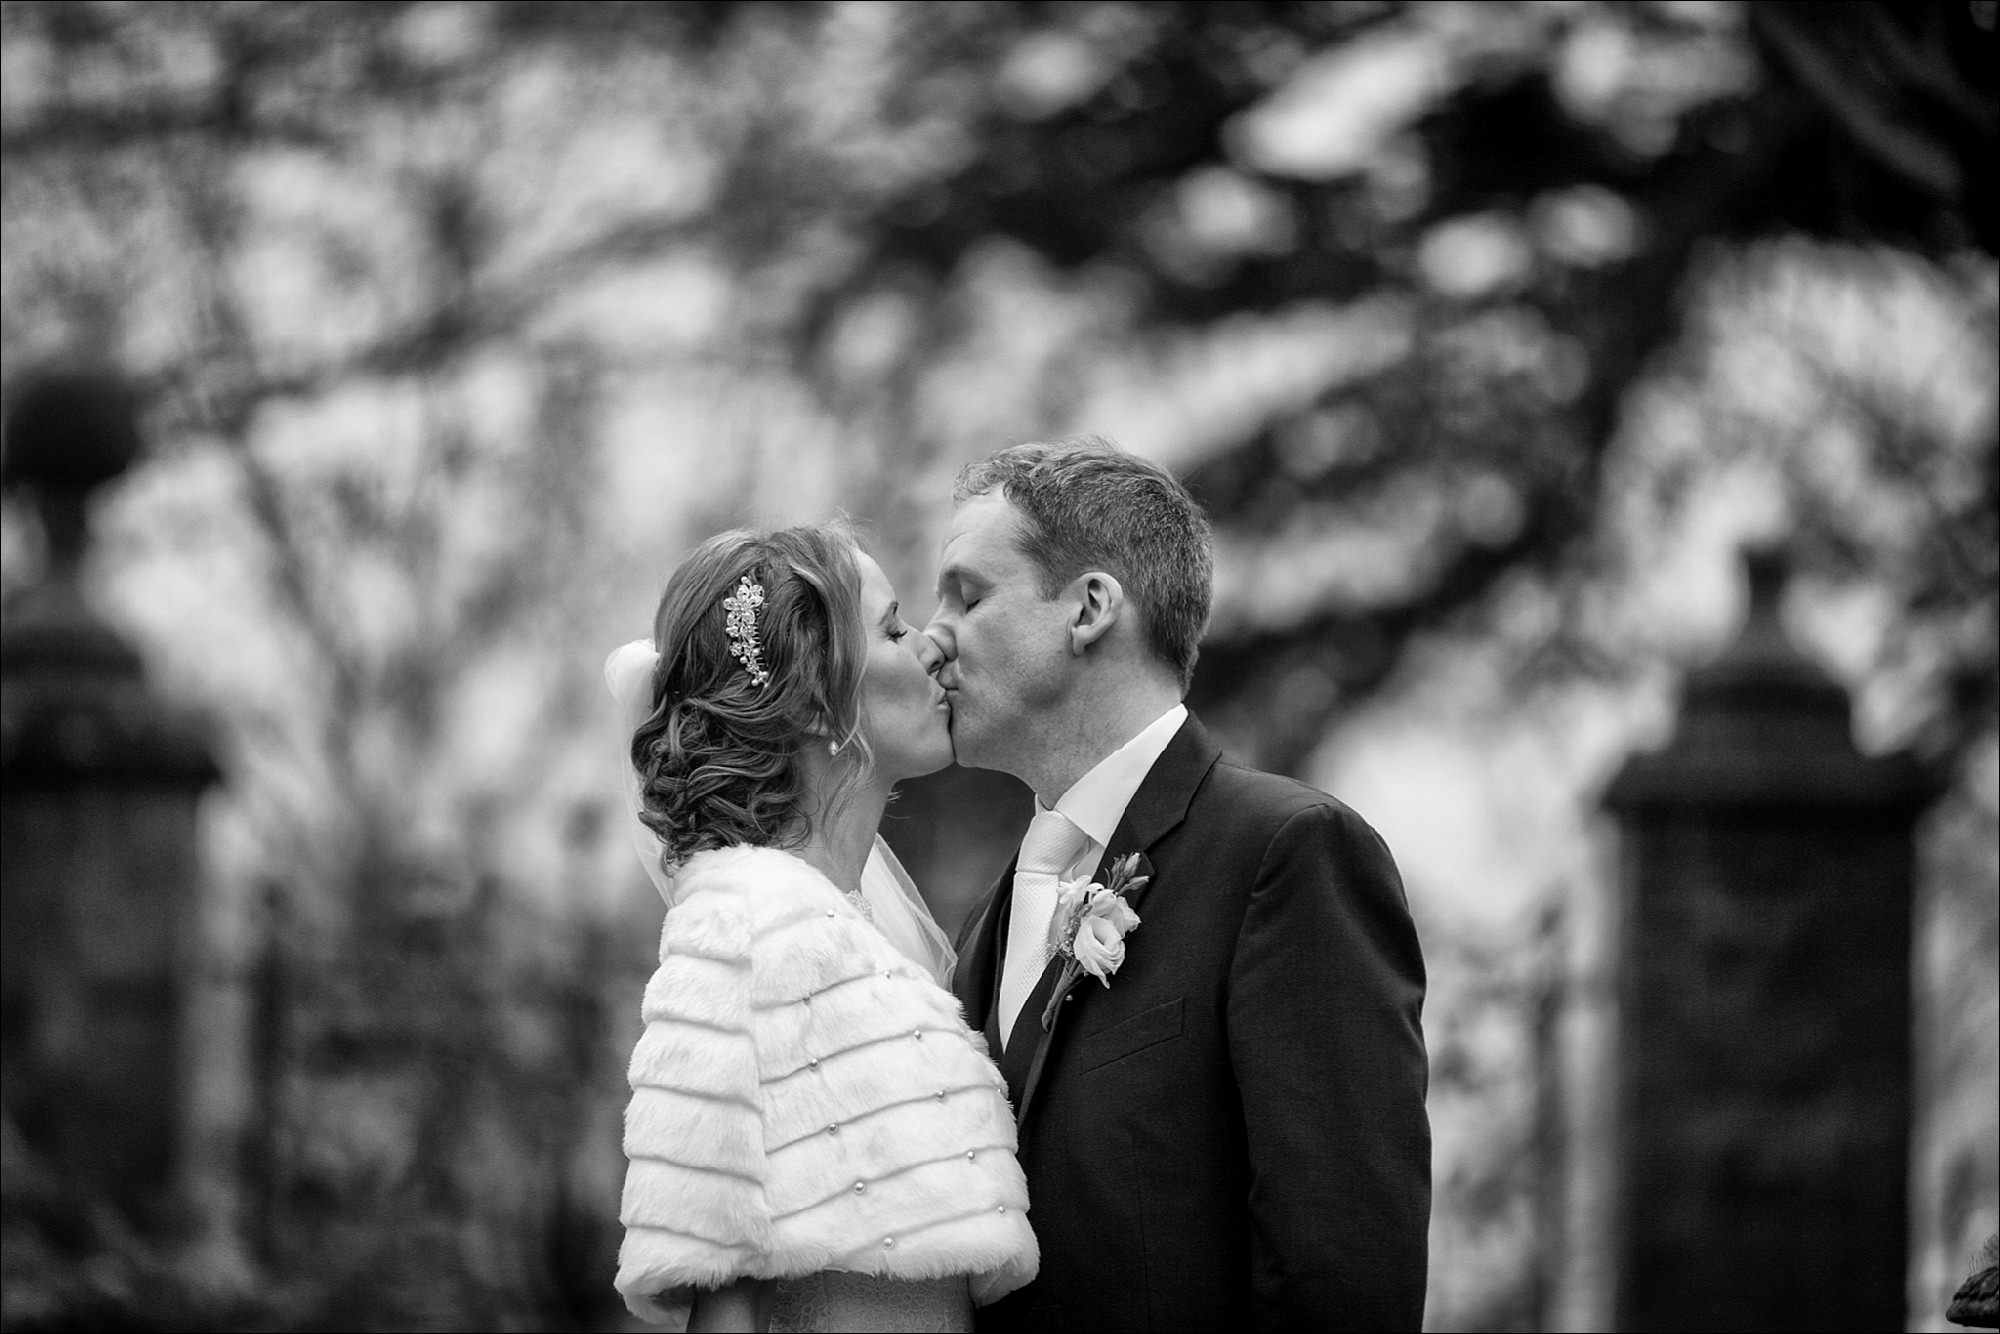 dublin wedding photographer david duignan photography tankardstown weddings slane rathfeigh church ireland 0037